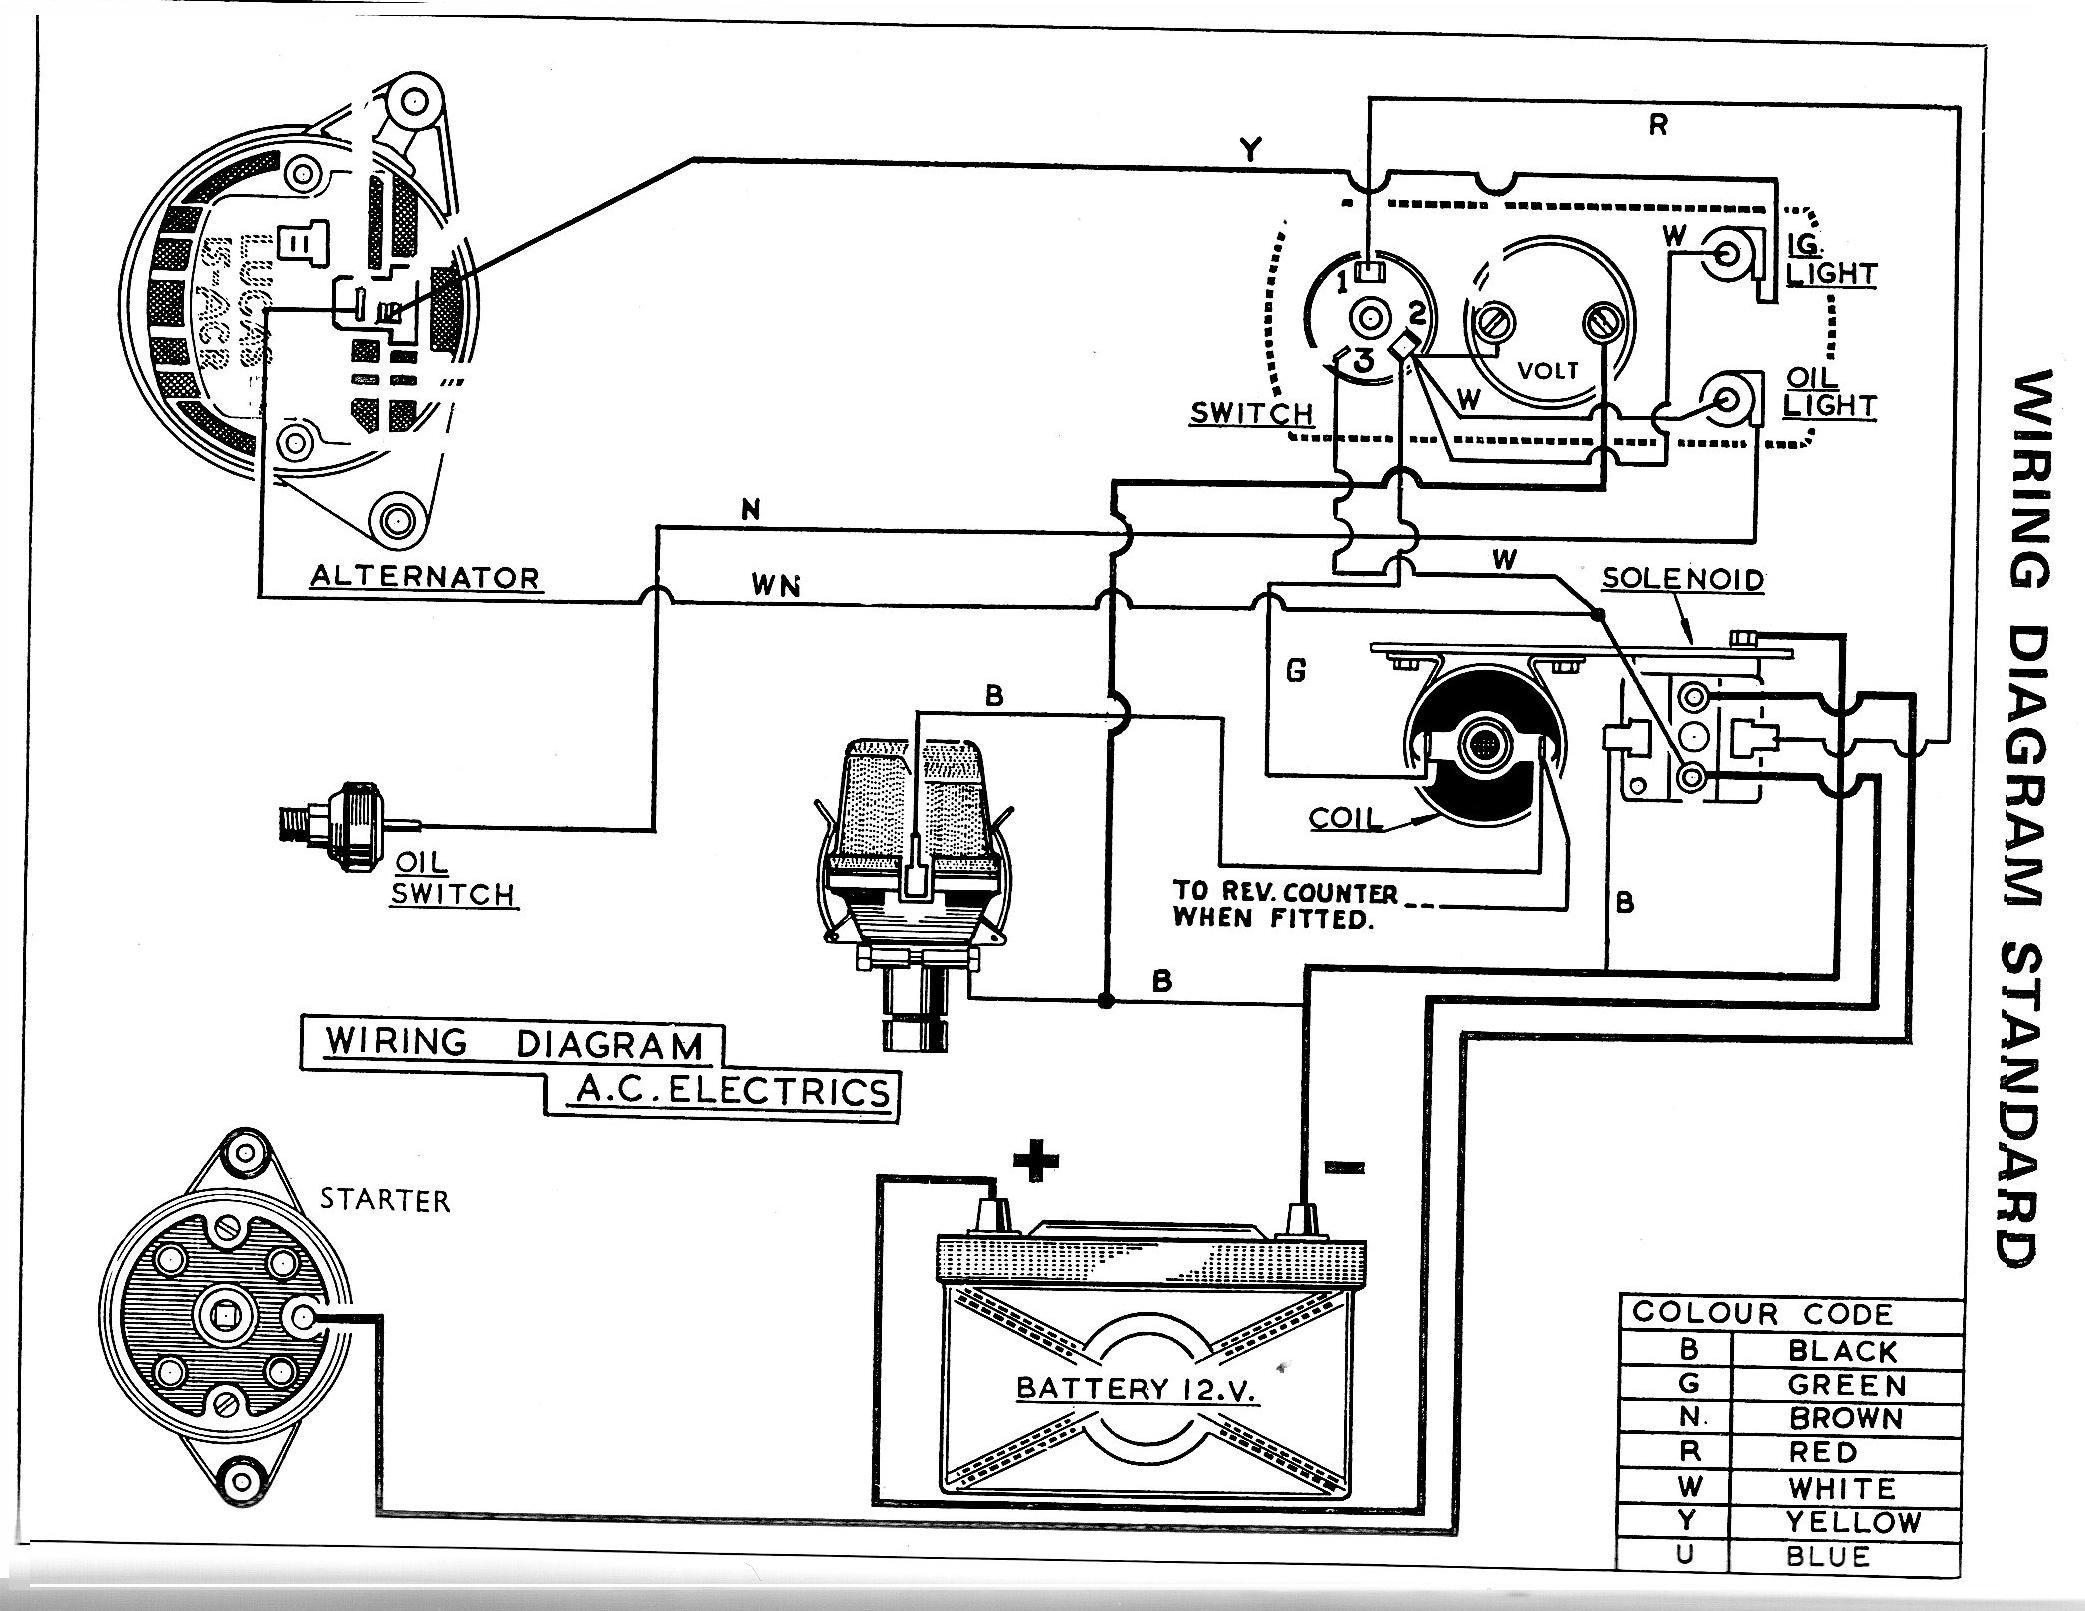 Ford 6600 Wiring Diagram. ford new holland 5100 5200 5600 5610 6600 6610  6700 6710. ford tractor service manual ford 2600 3600 4100 4600. generator  voltage reg problems yesterday 39 s tractorsA.2002-acura-tl-radio.info. All Rights Reserved.